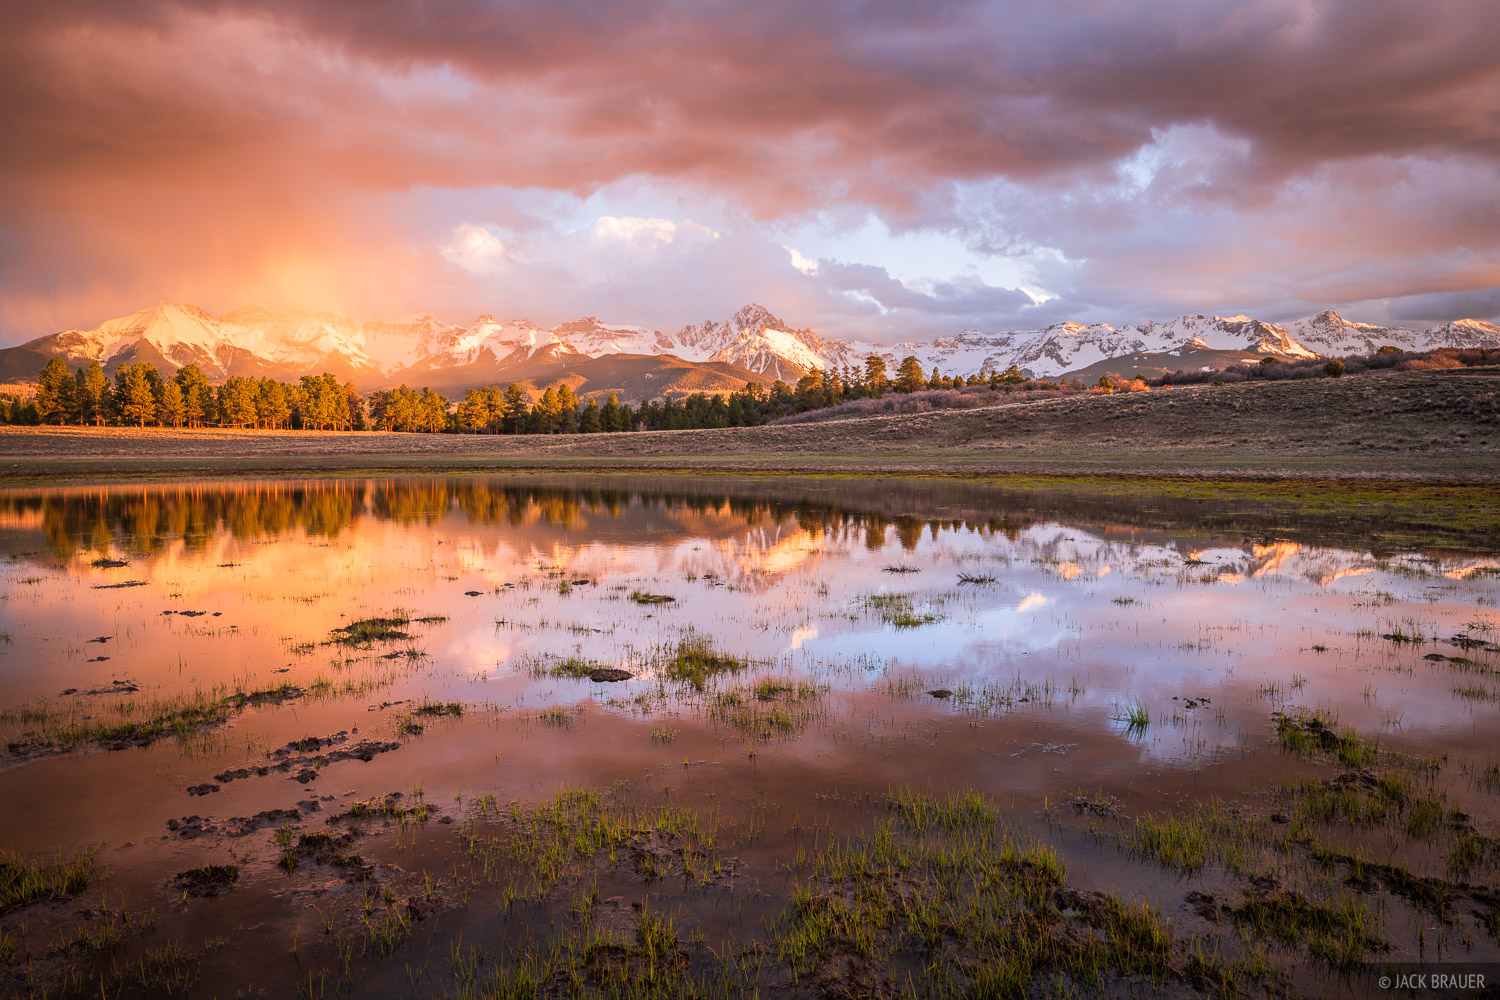 A wild May sunset over the Mount Sneffels and the Sneffels Range.